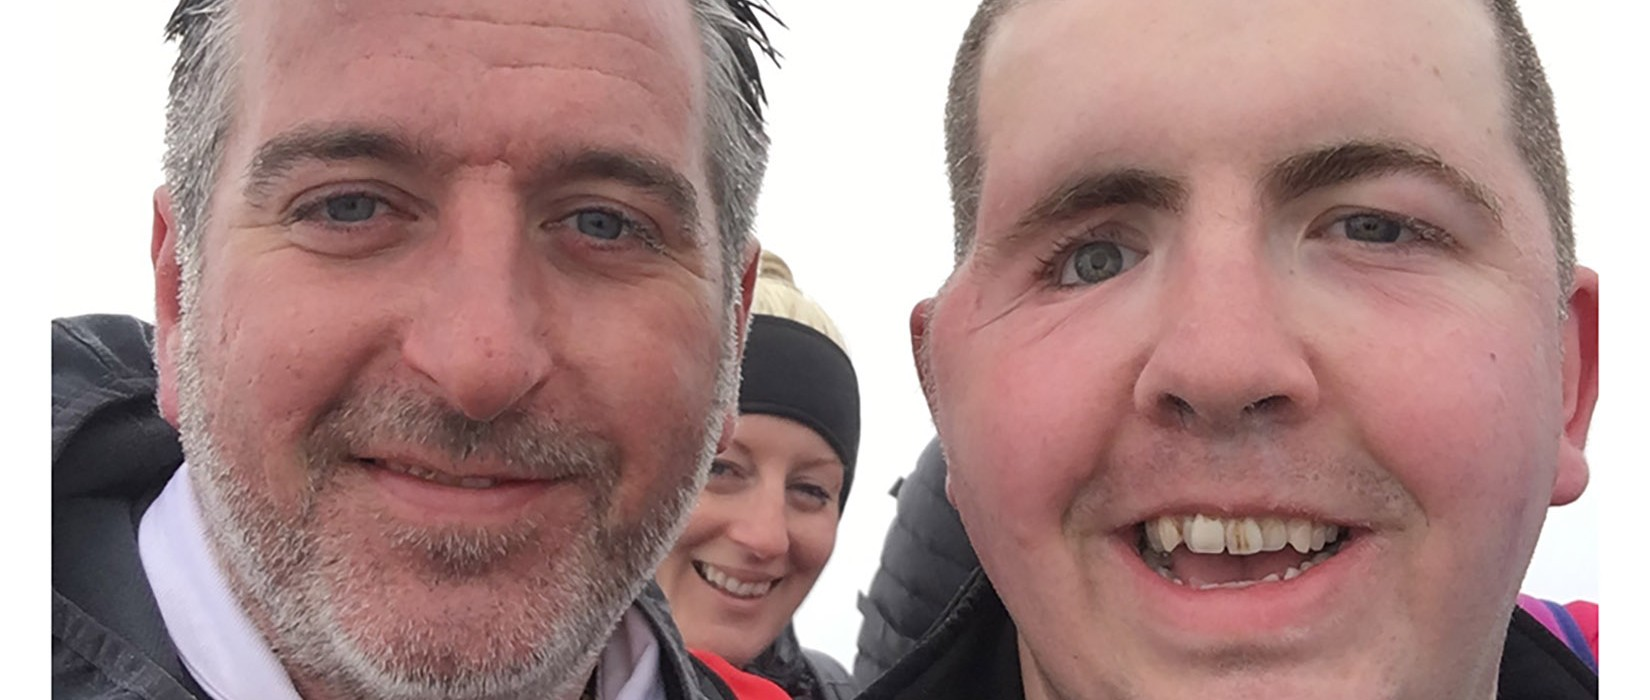 Ex-soldier John raises £1,500 for charity on his Snowdon walk